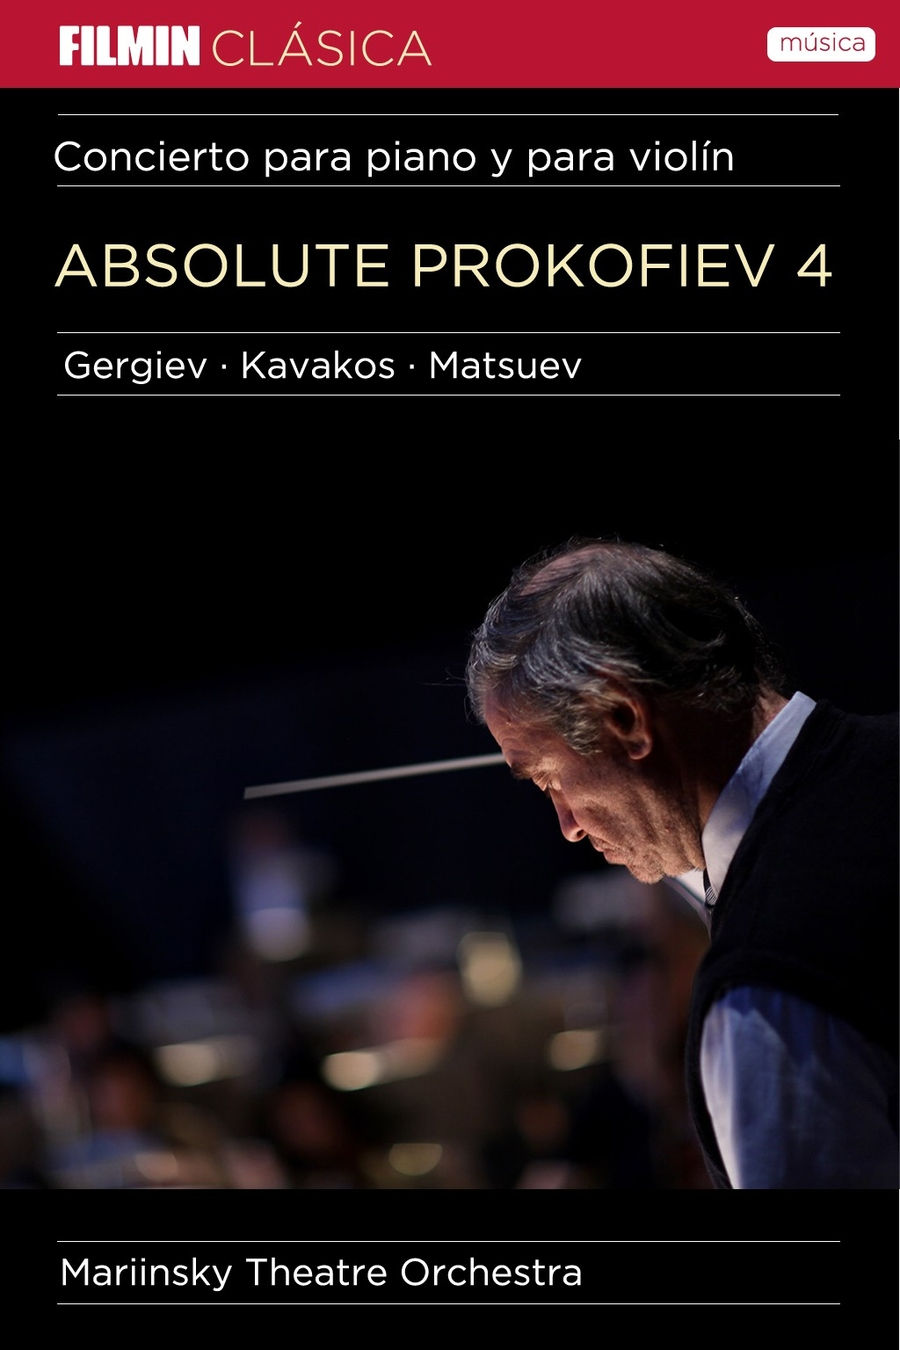 Absolute Prokofiev 4